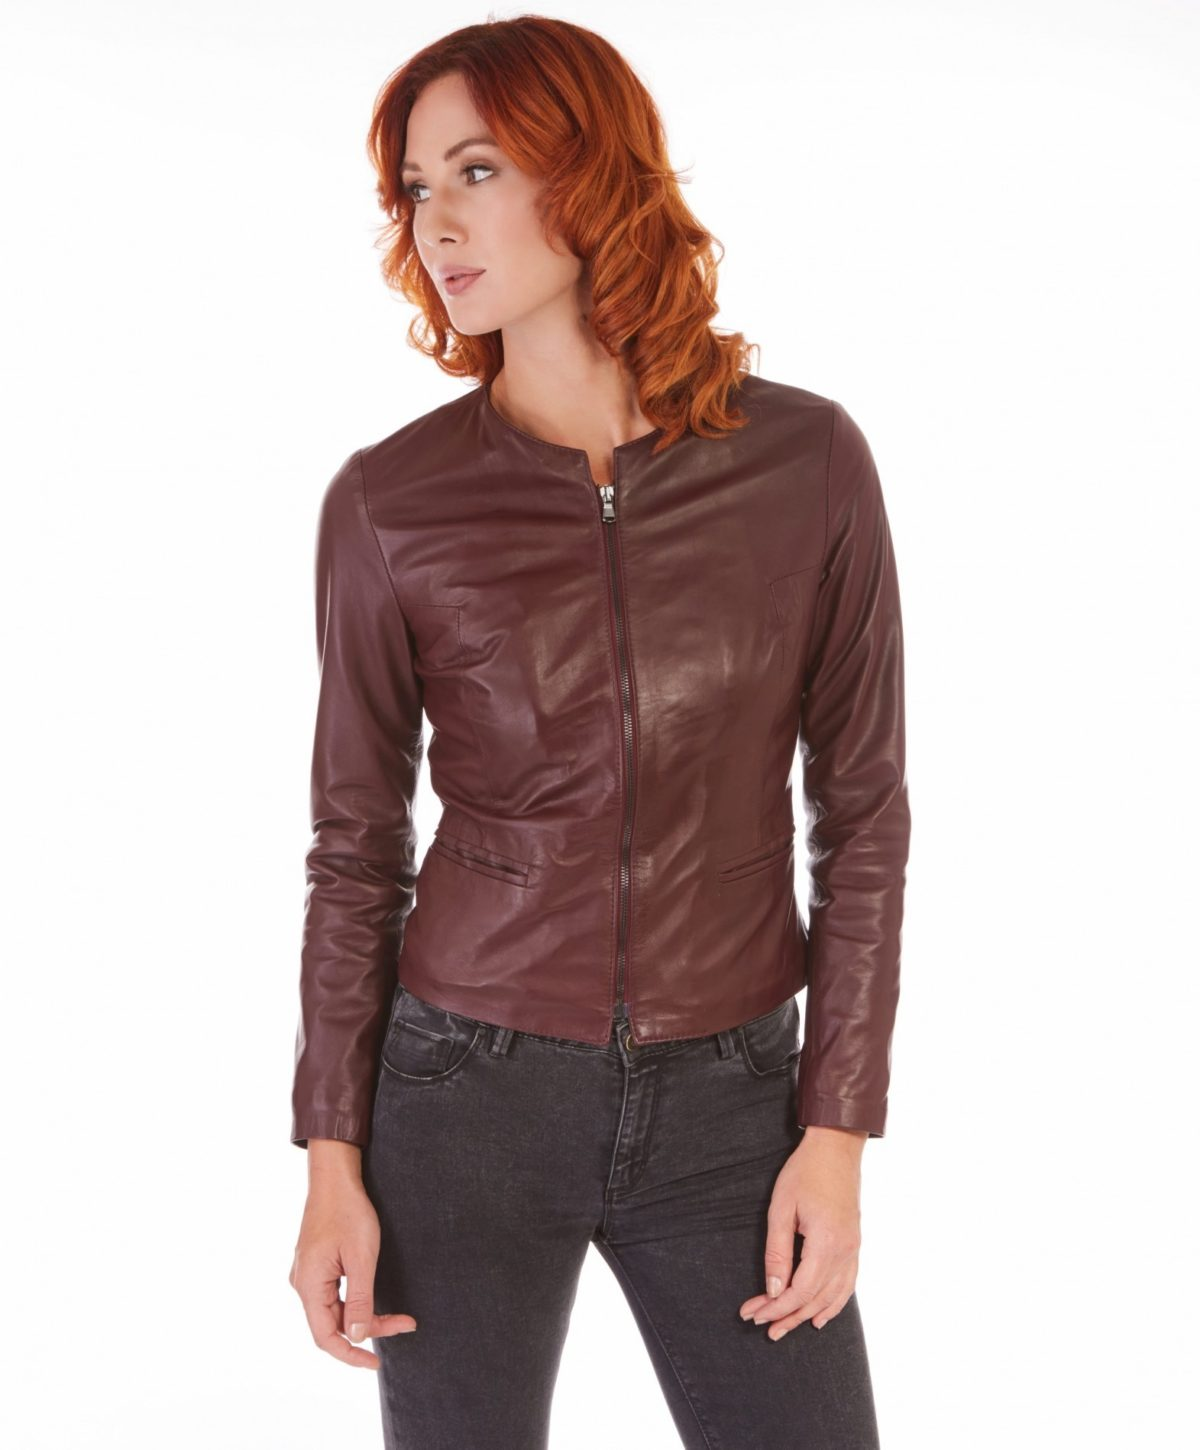 clear-red-purple-color-lamb-leather-round-neck-jacket (3)